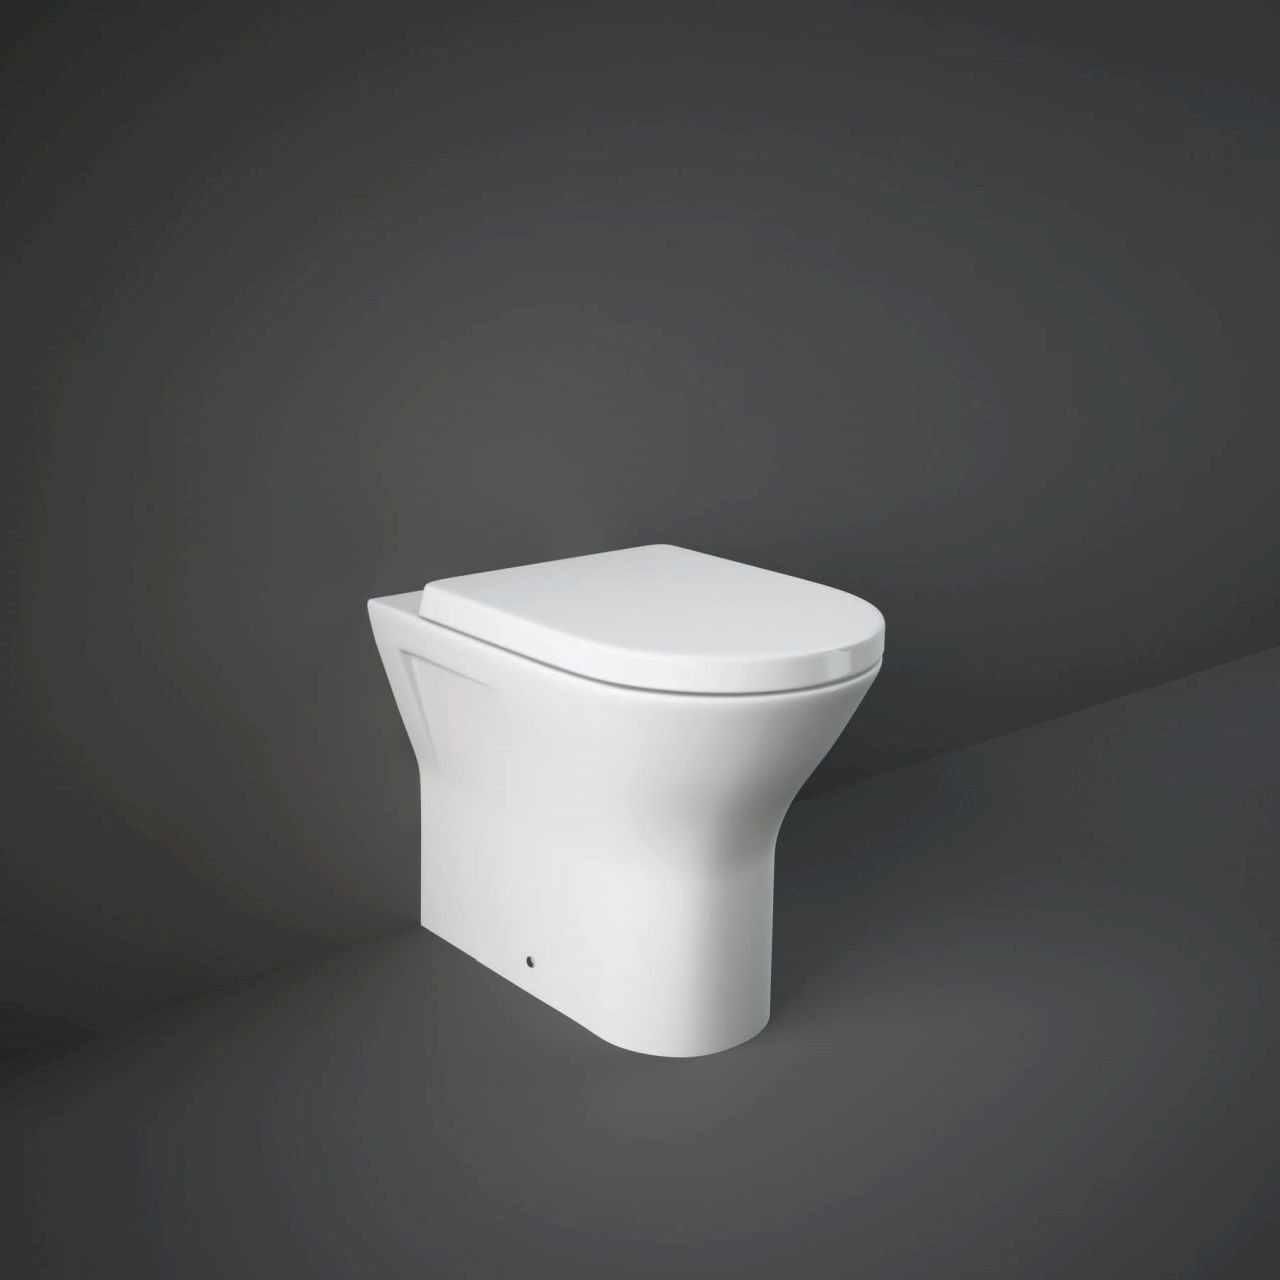 RAK Resort Back to Wall Toilet Pan with Sandwich Soft Close Seat - RSTBTWPAN/012